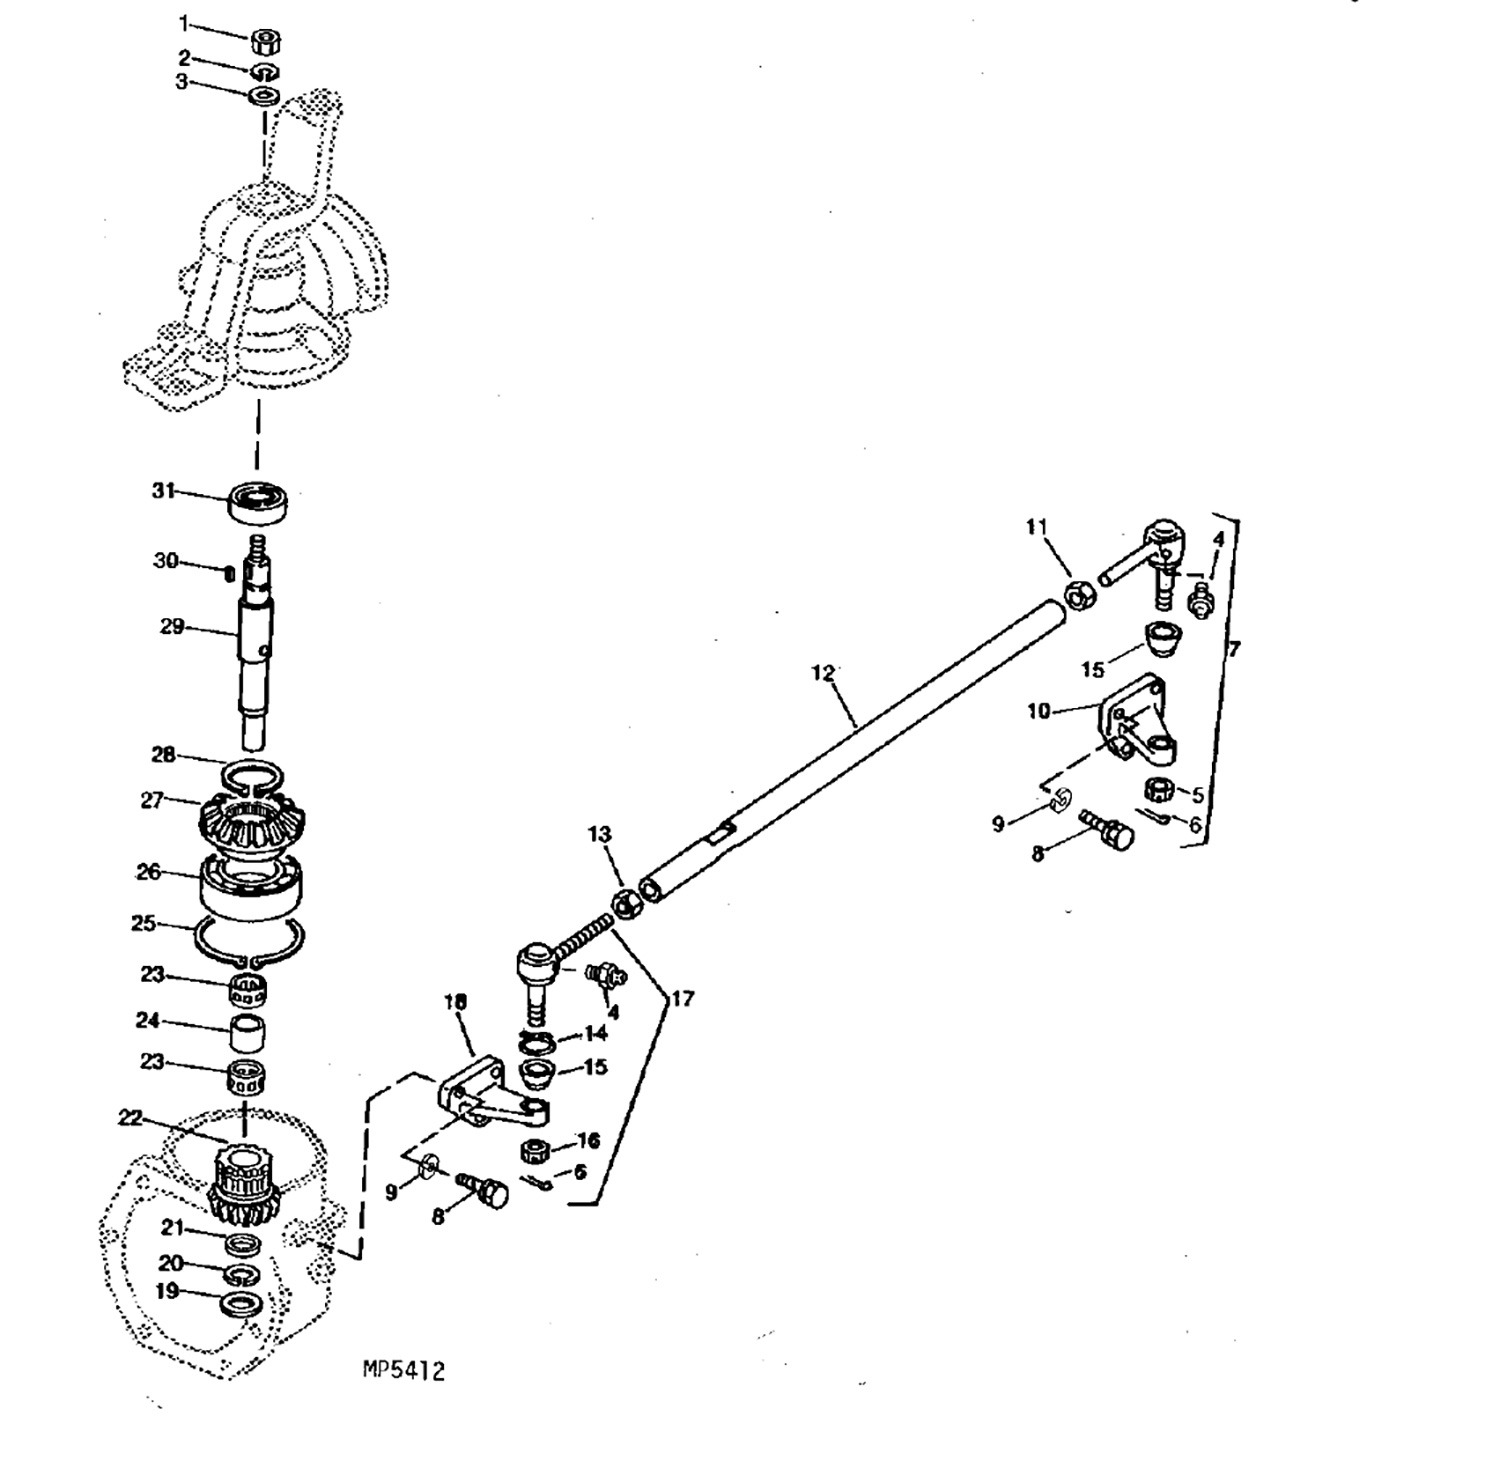 Front Axle Oring 4wd 2 also 1992 Dodge Dakota Ignition Coil Wiring Diagram additionally Nissan Altima Fuse Box Cover as well Microfiche likewise 1978 Chevrolet Truck Service And Overhaul Manuals On CD P21381. on tail light cover